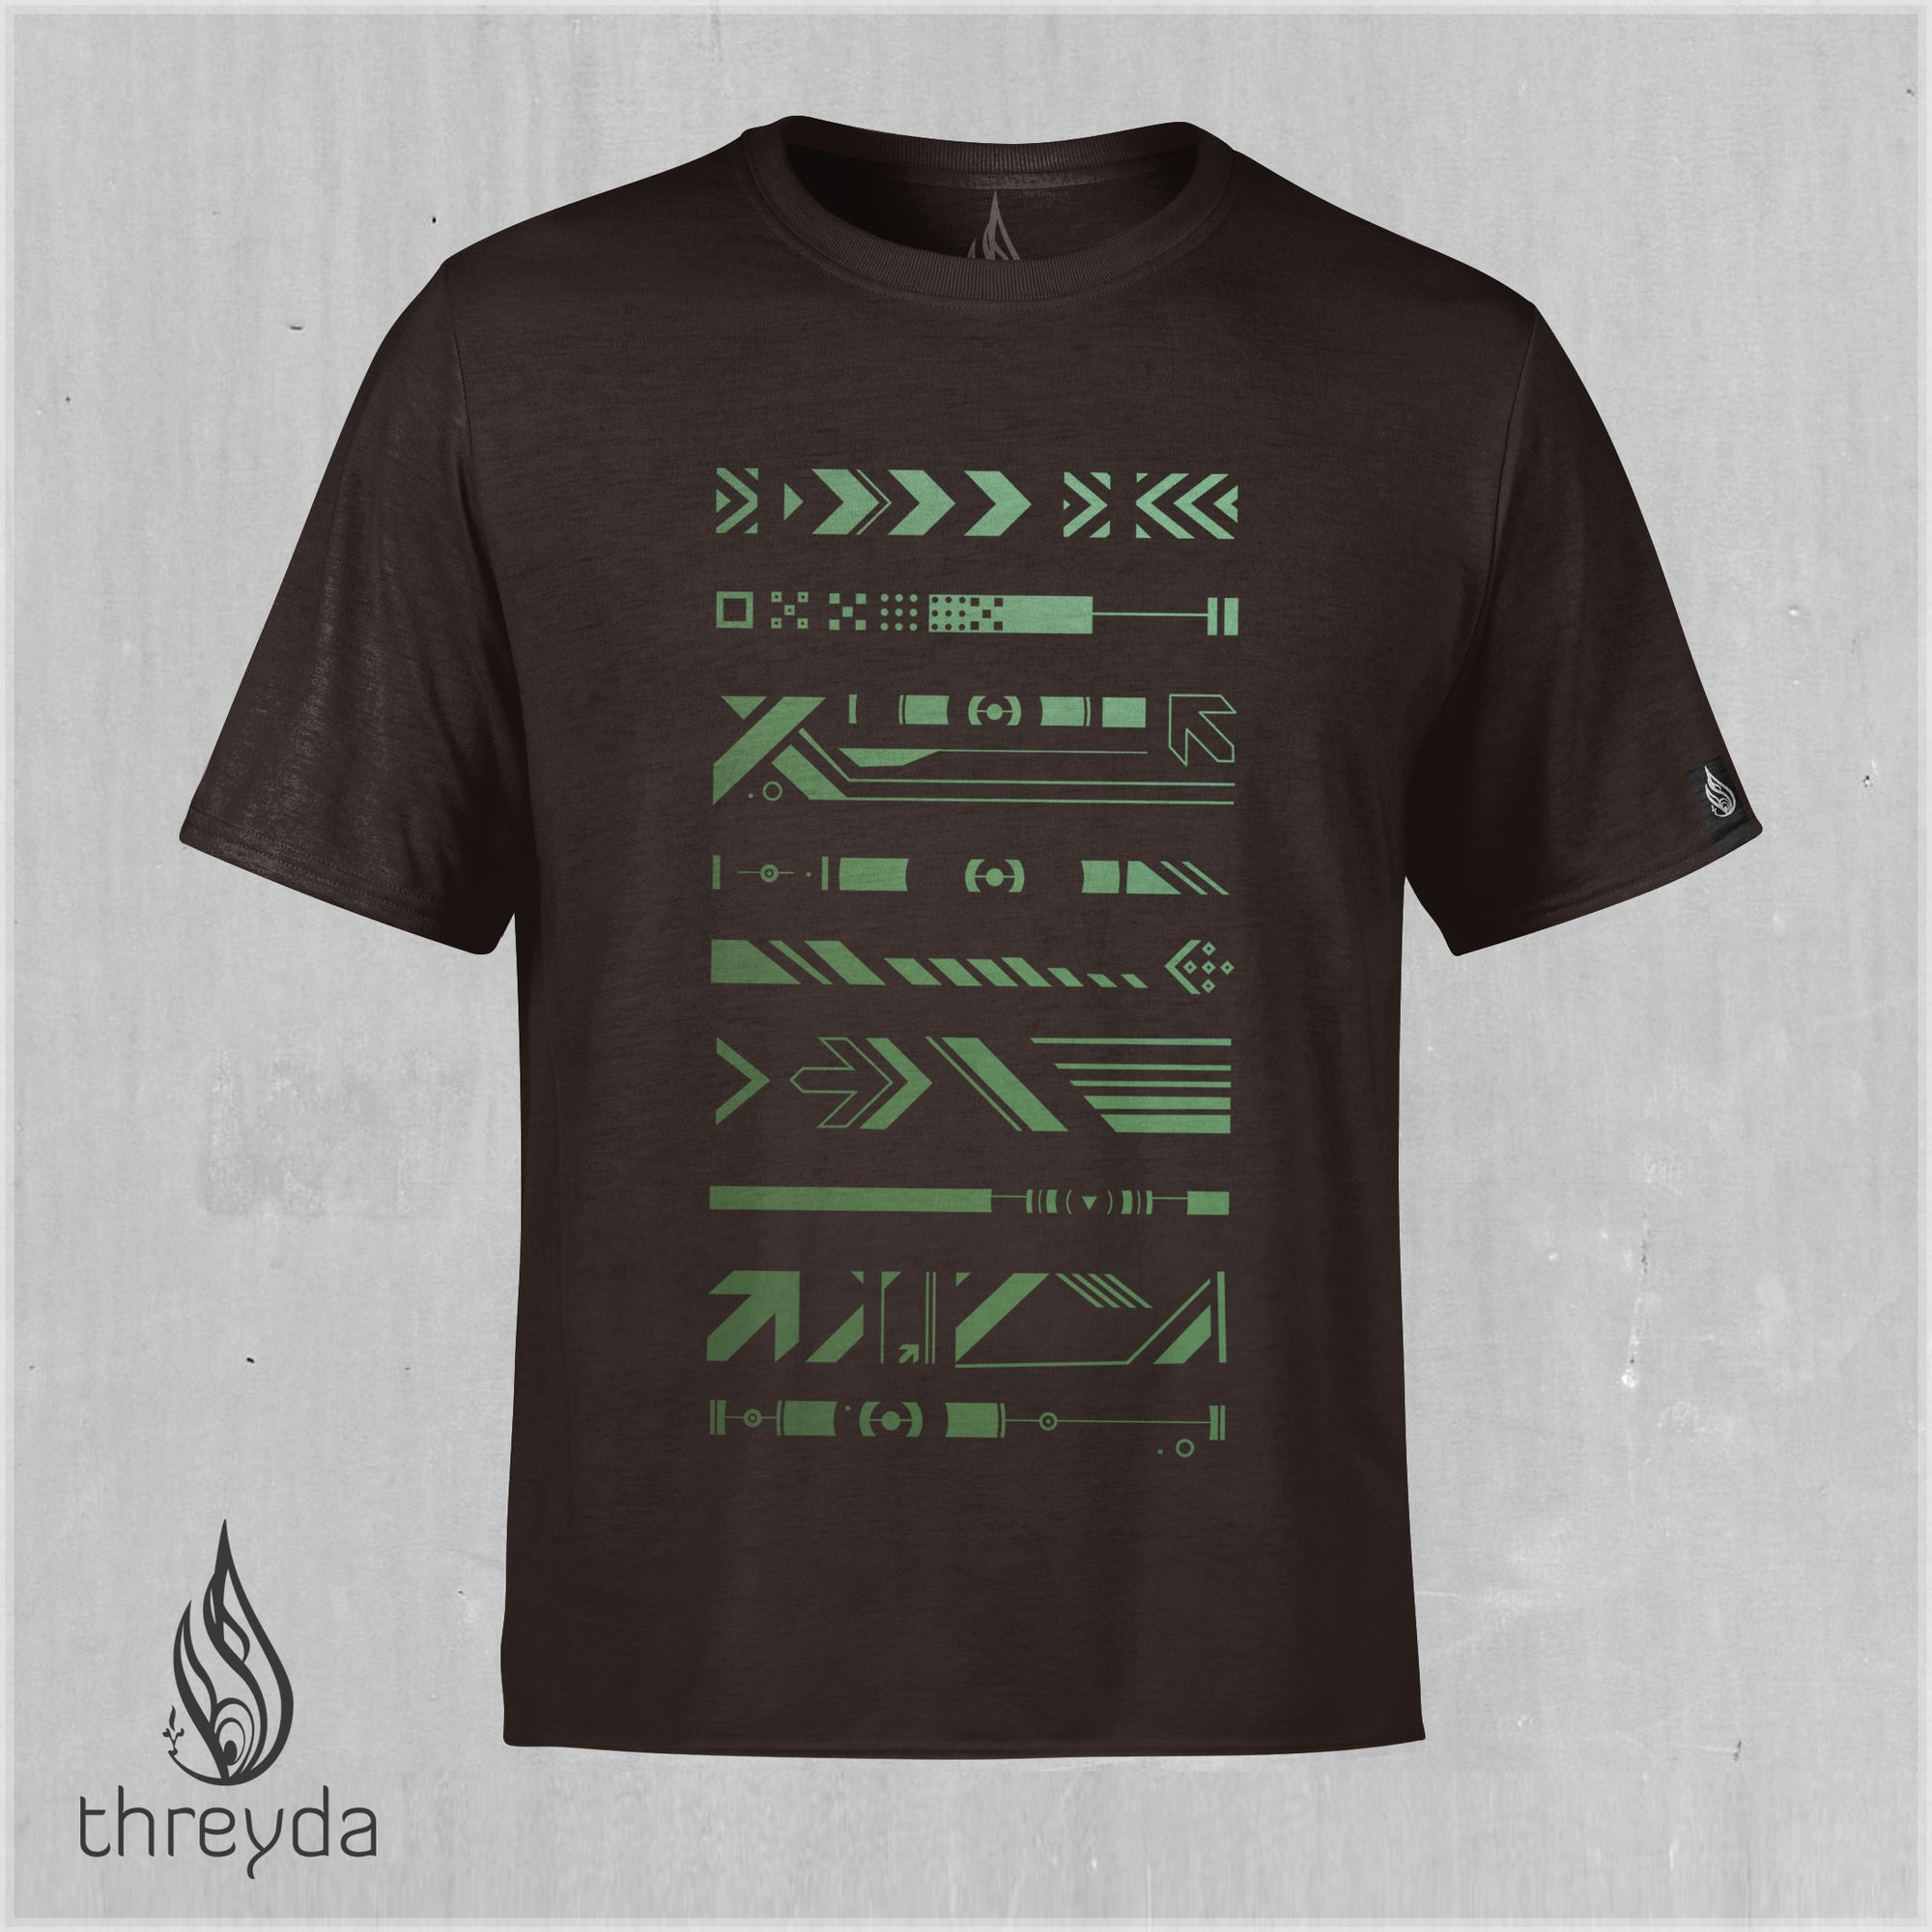 Data Hieroglyph Color Shifting Cotton Tee by Threyda